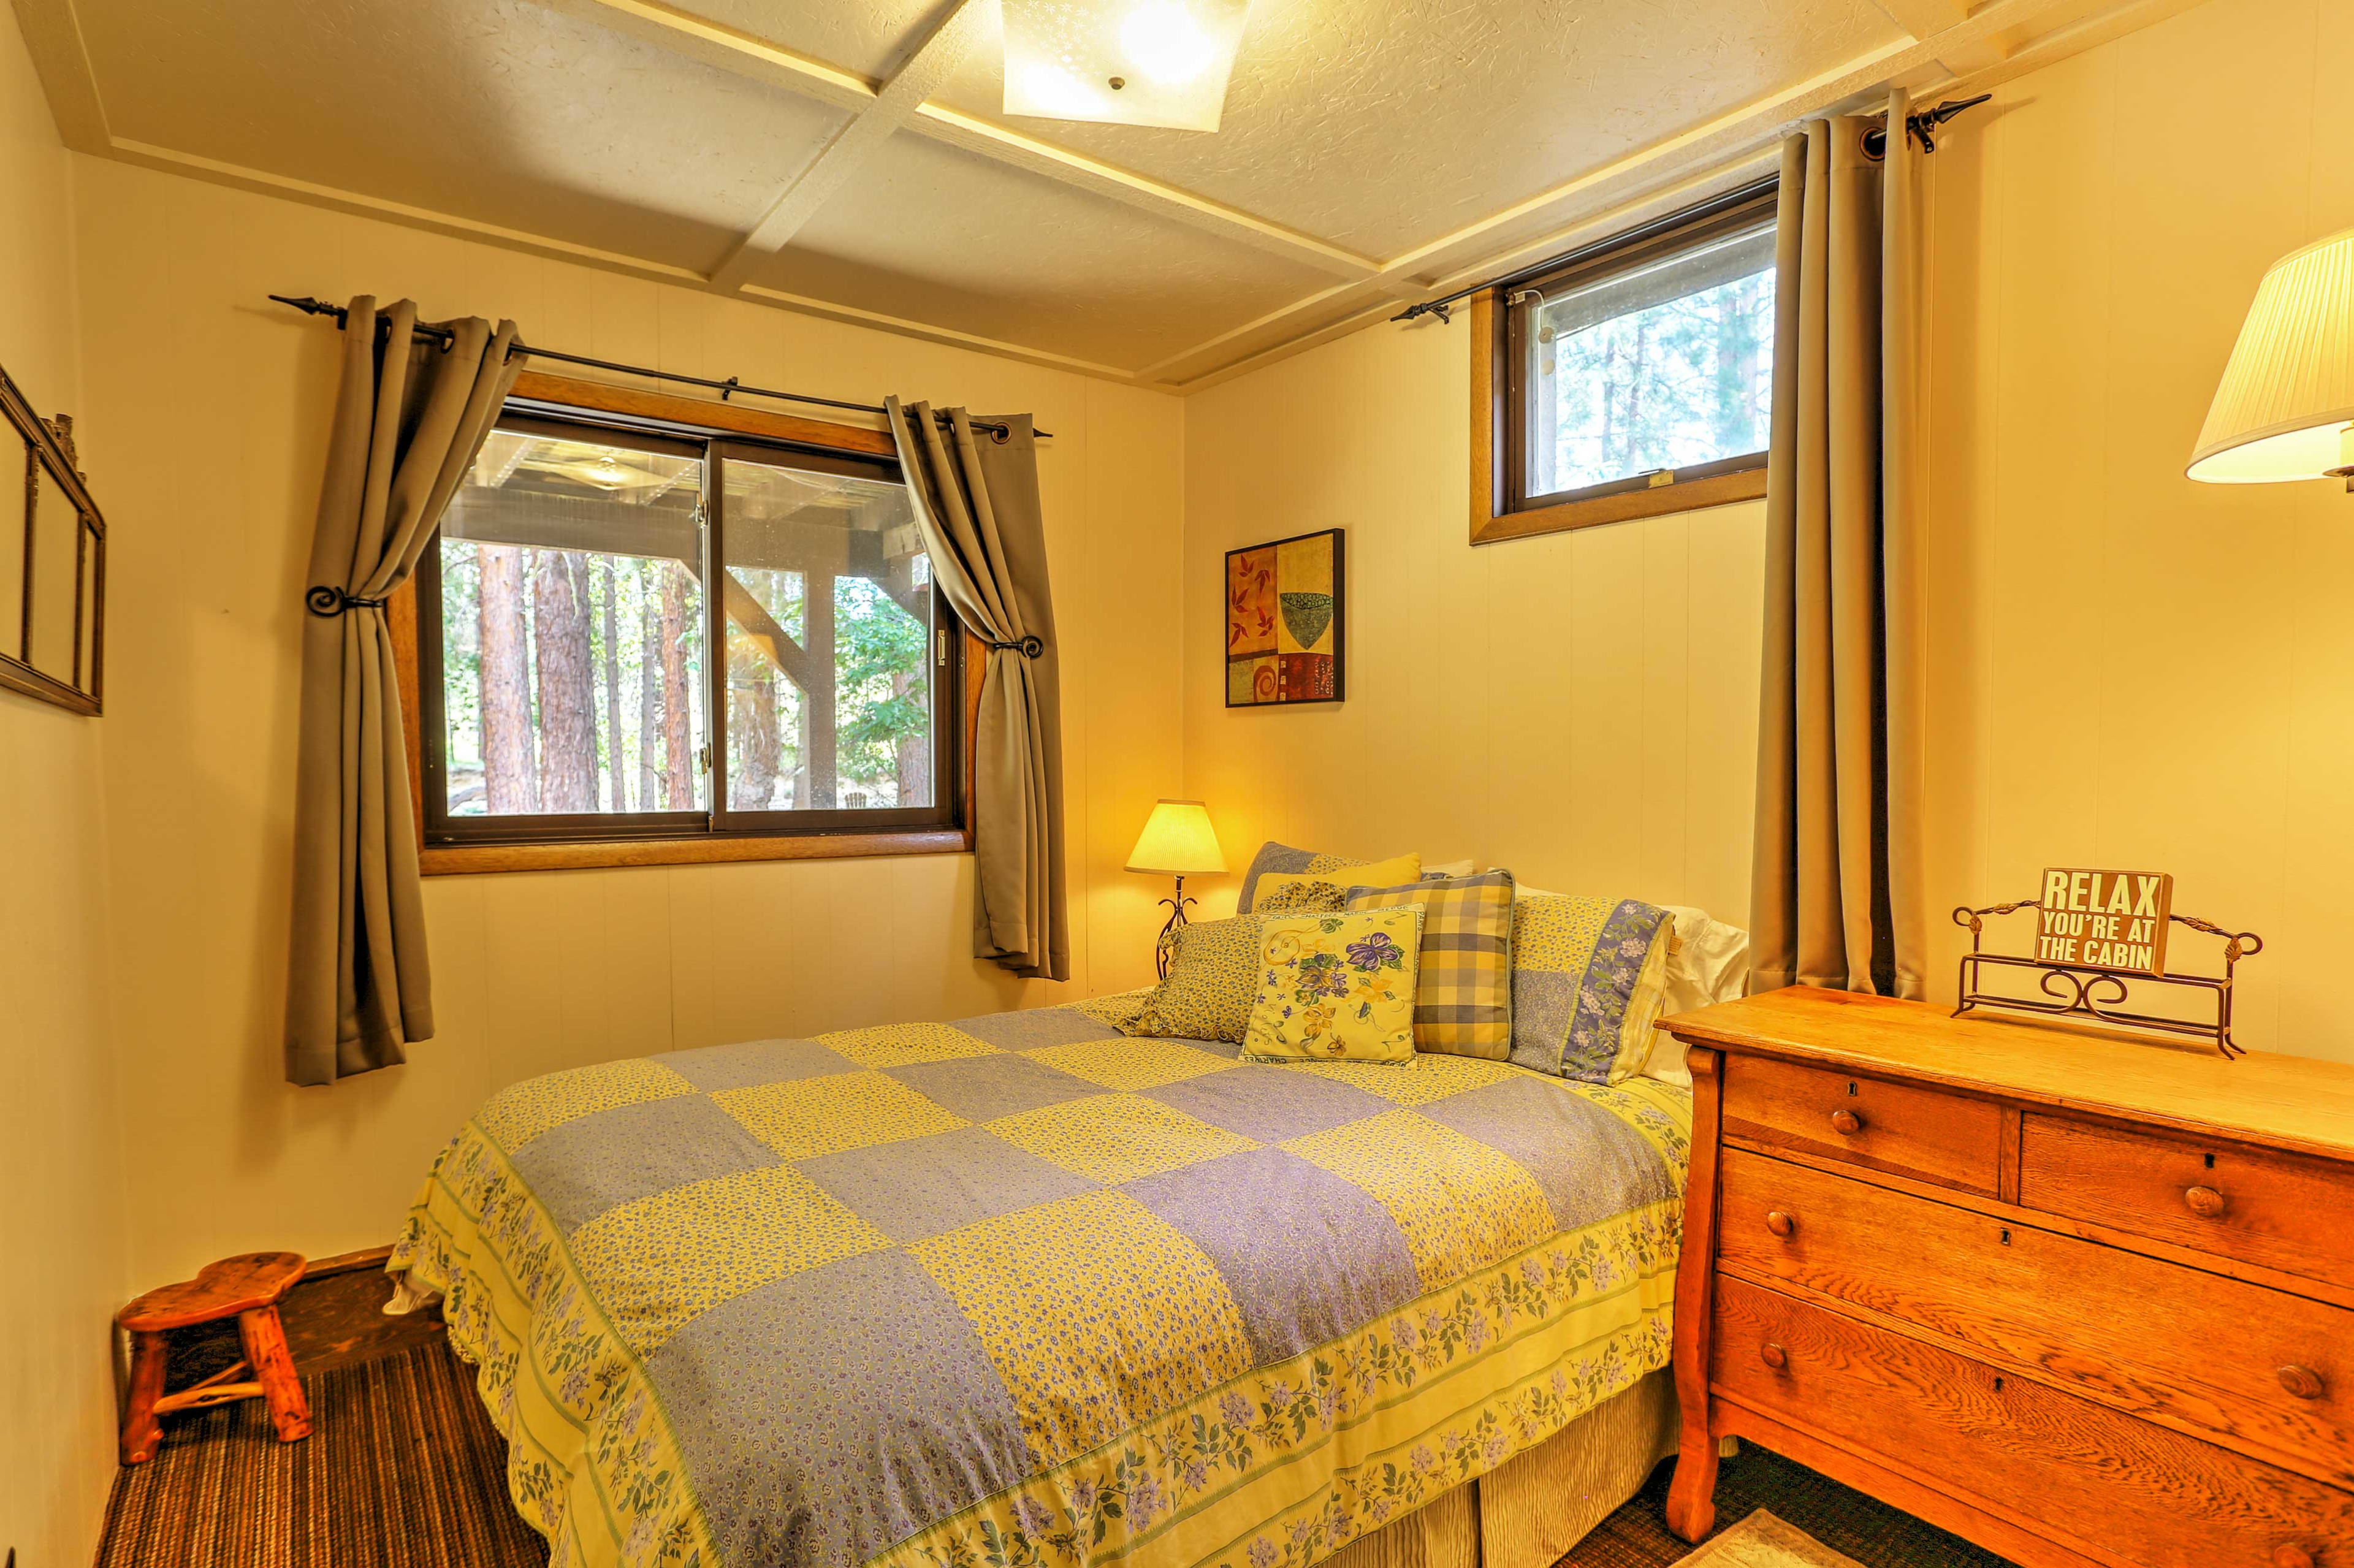 The second bedroom also provides a queen-sized bed.